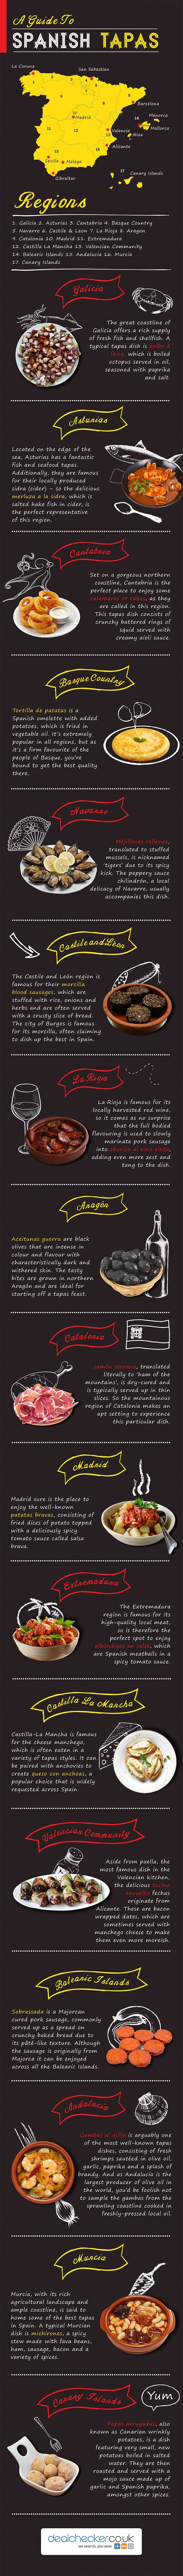 A Guide to Spanish Tapas | Dealchecker Blog